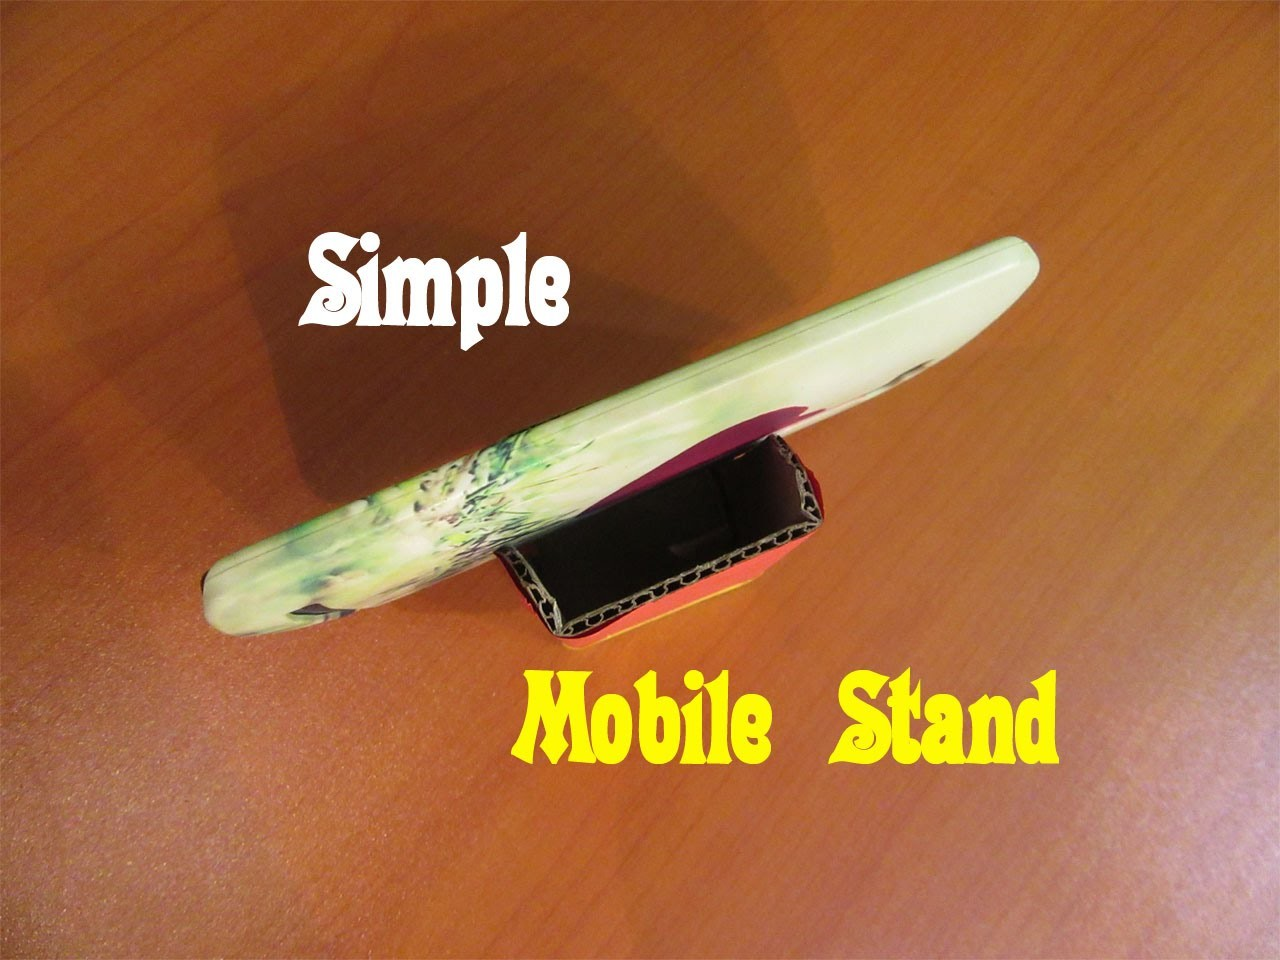 How to Make a Simple Mobile Phone Stand - Easy Tutorials